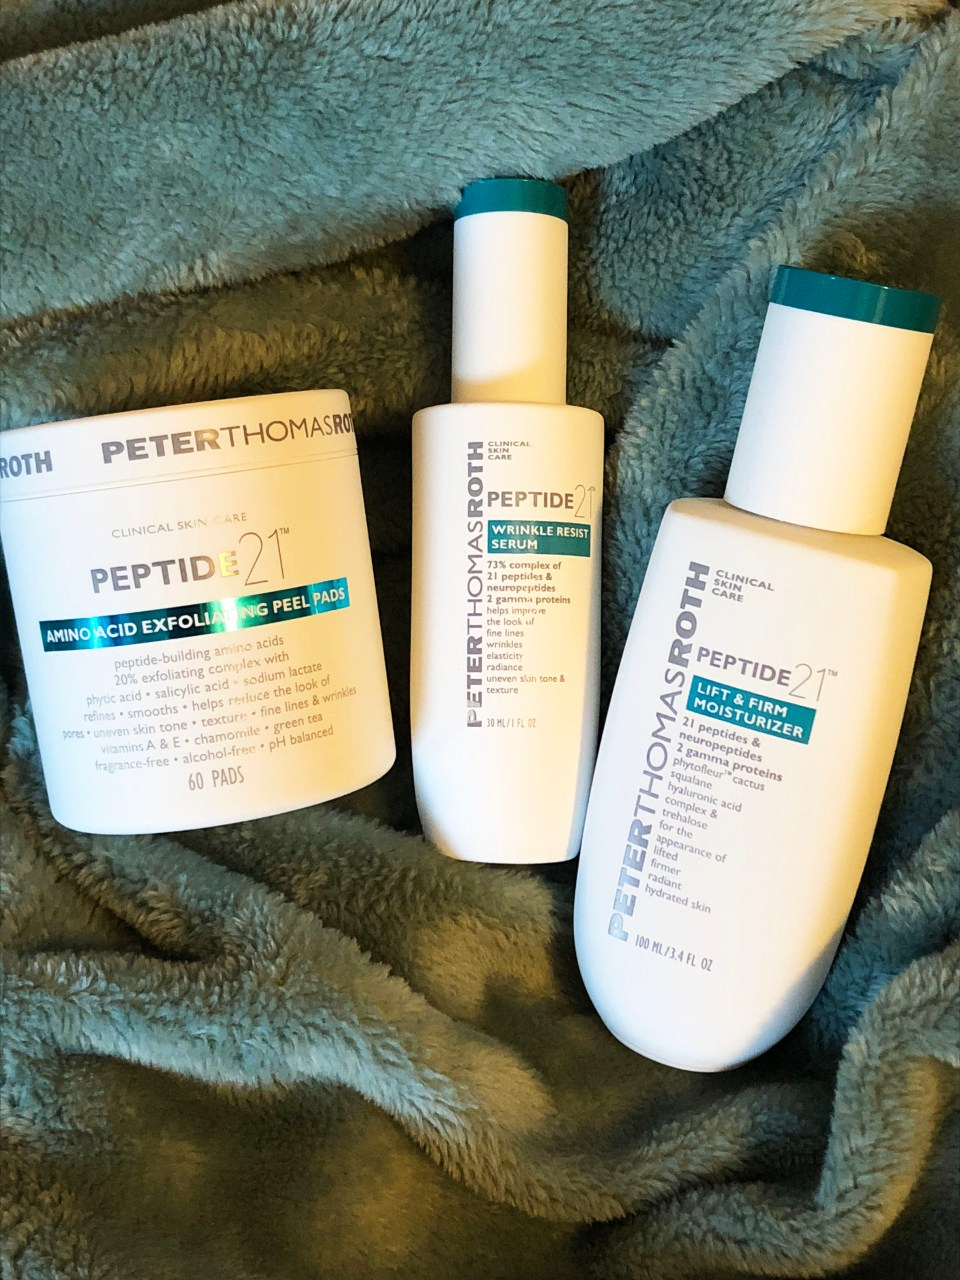 Peter Thomas Roth Peptide 21 Collection 1